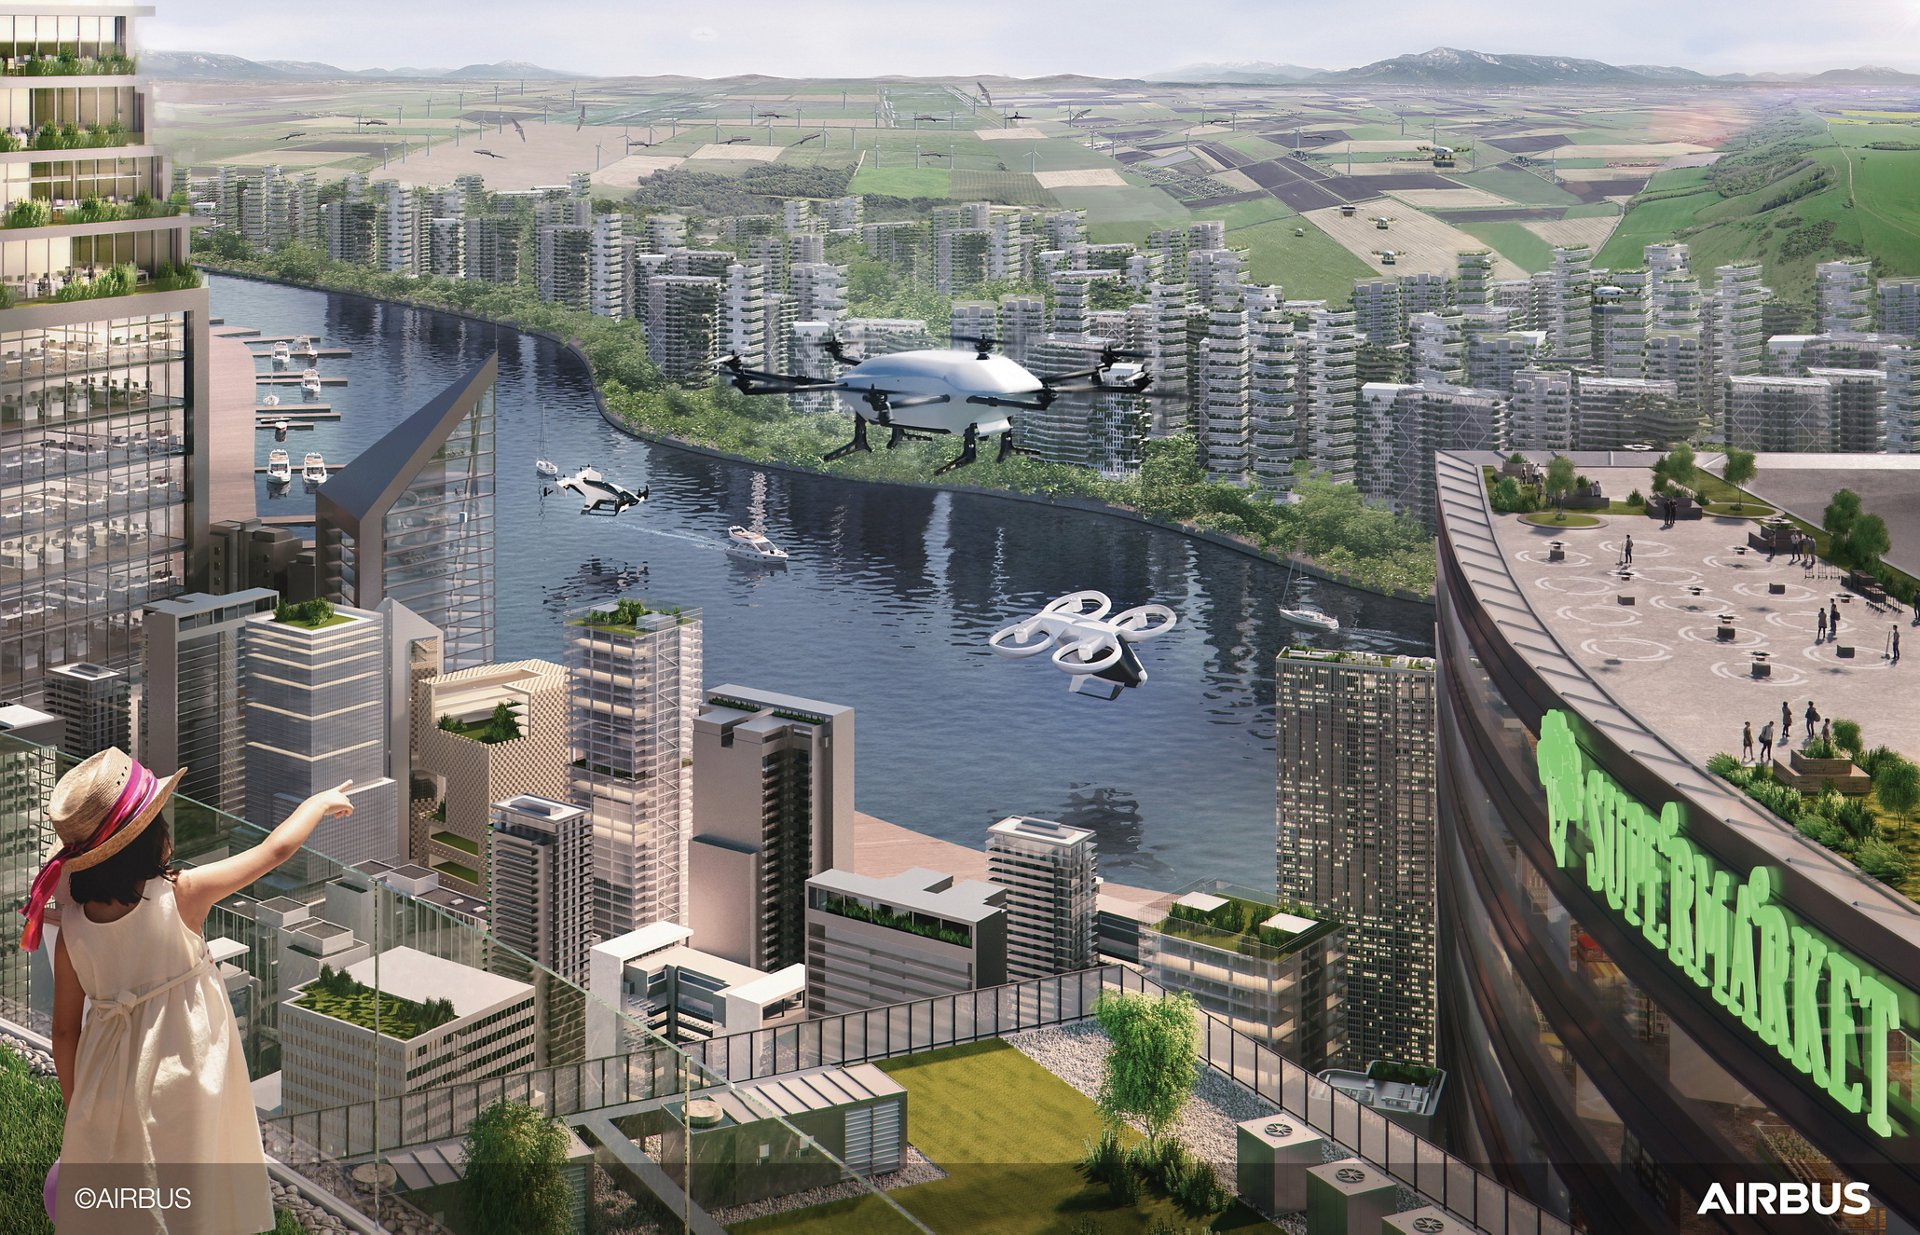 Urban Air Mobility: on the path to public acceptance